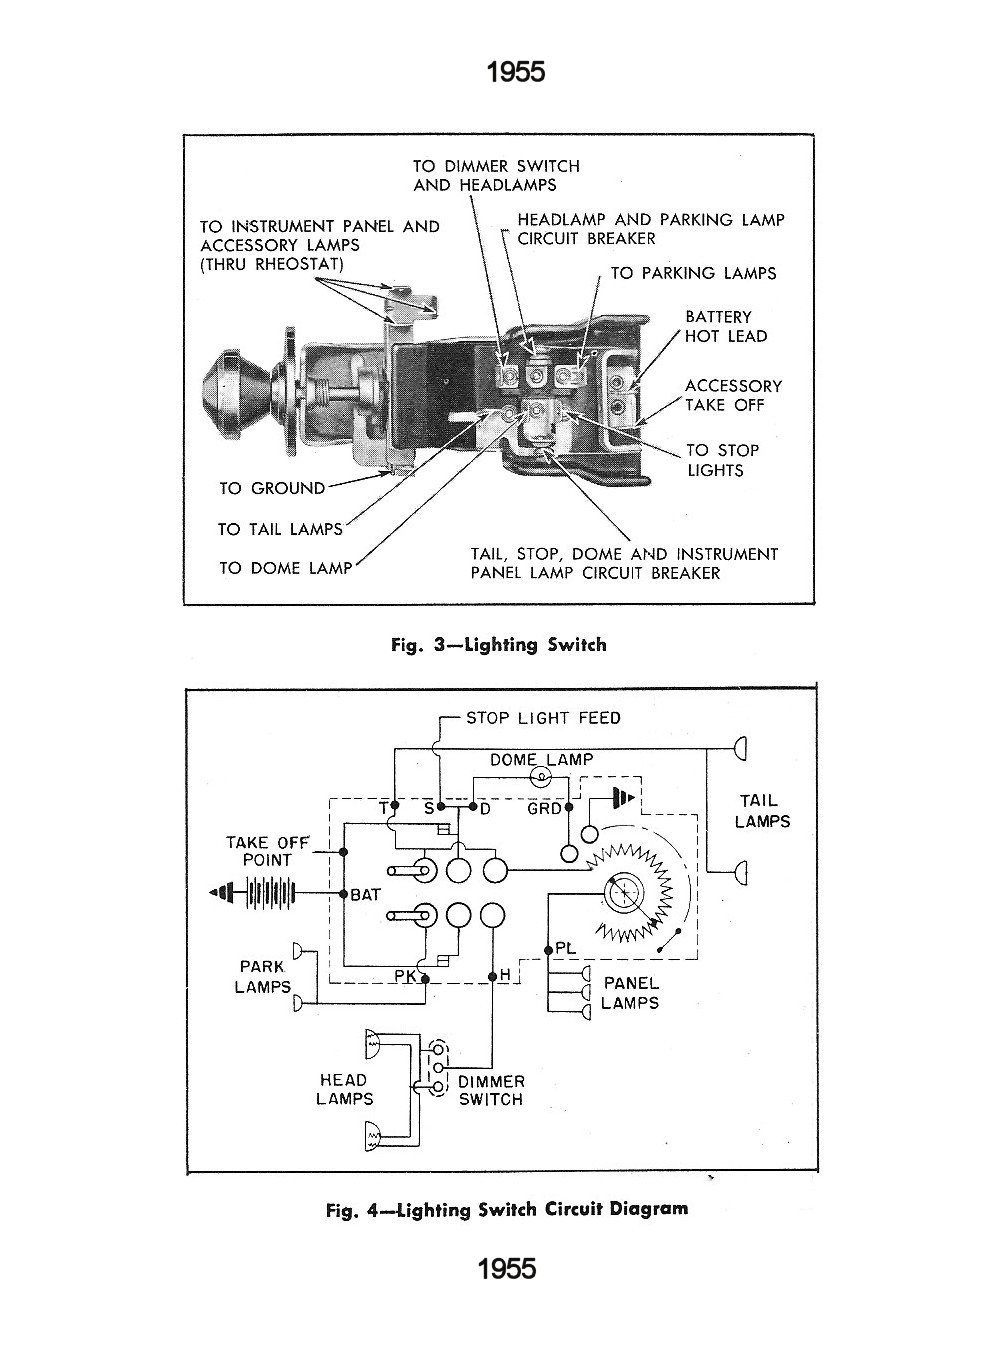 Outstanding 1984 Chevy C10 Fuse Box Diagram Basic Electronics Wiring Diagram Wiring Cloud Staixuggs Outletorg